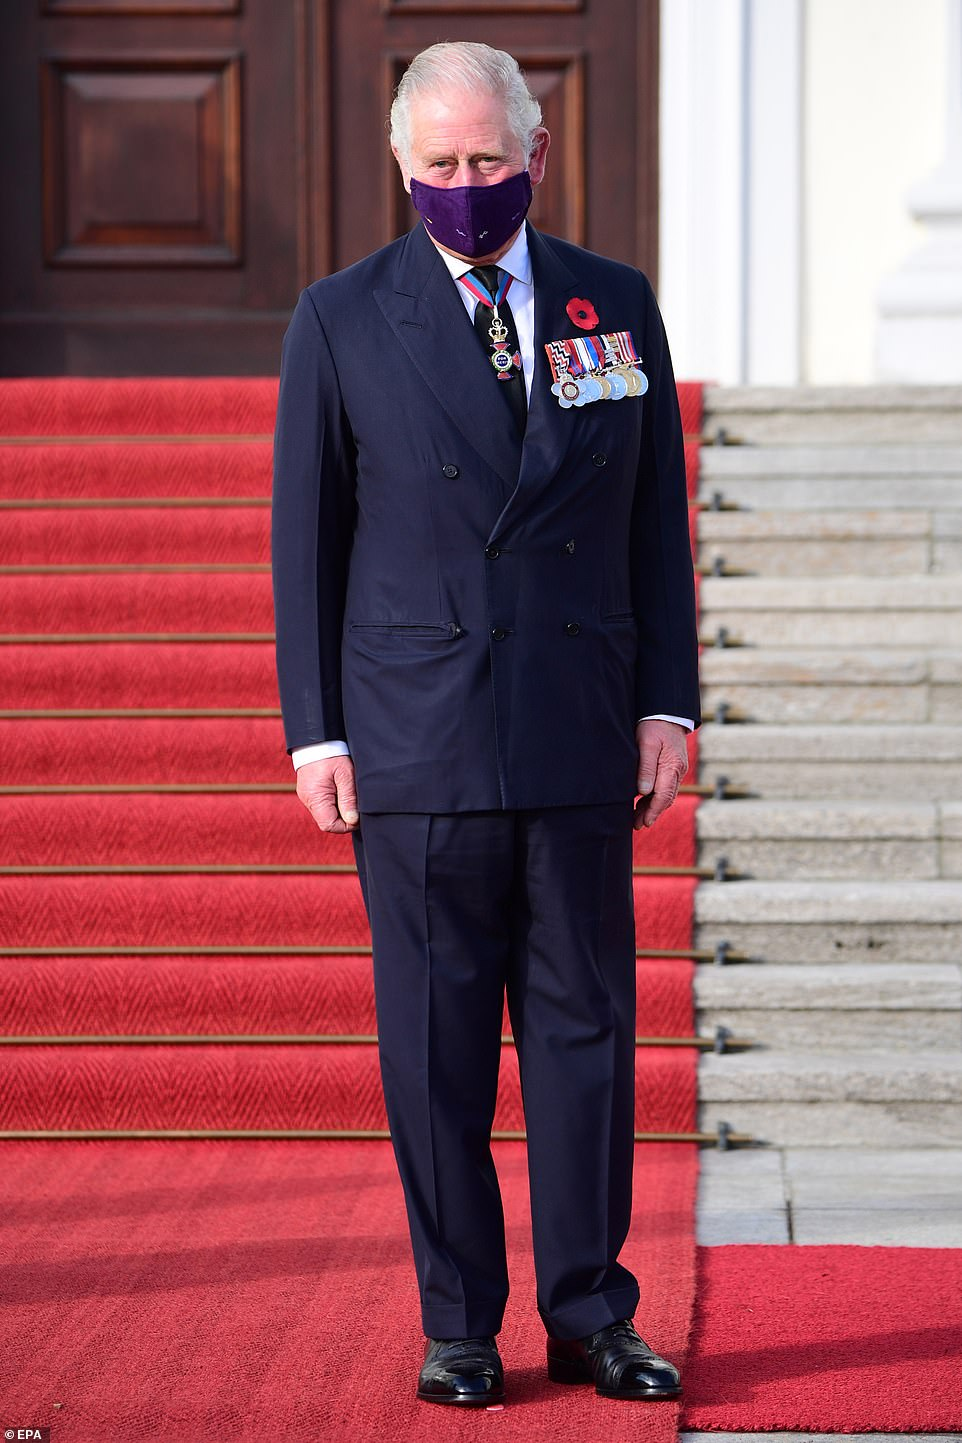 Charles, who celebrated his 72nd birthday yesterday, wore his military medals for the sombre occasion.The event aims to reflect the importance of British-German ties amid Brexit tensions